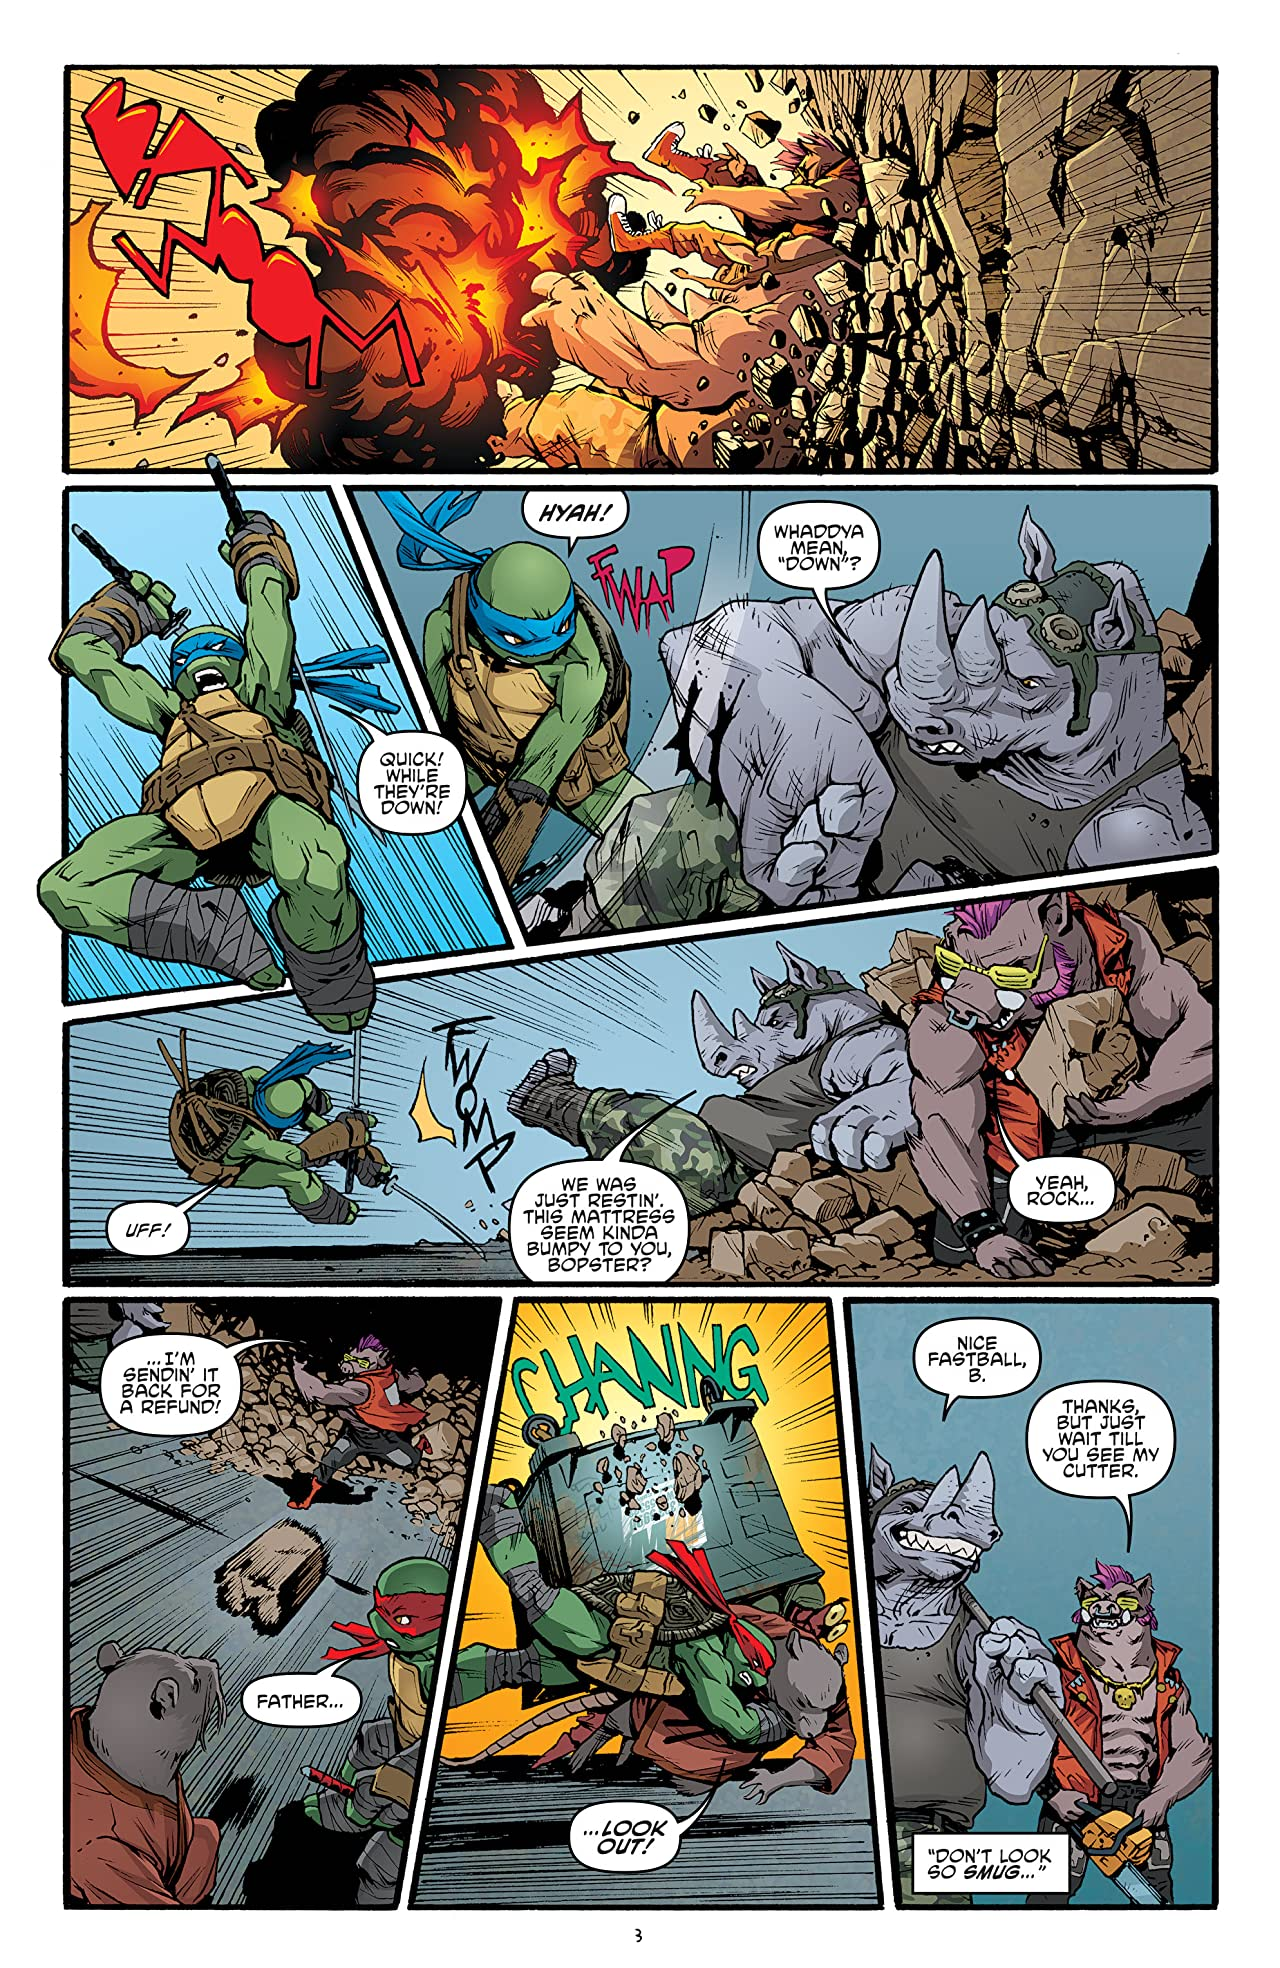 Teenage Mutant Ninja Turtles #40